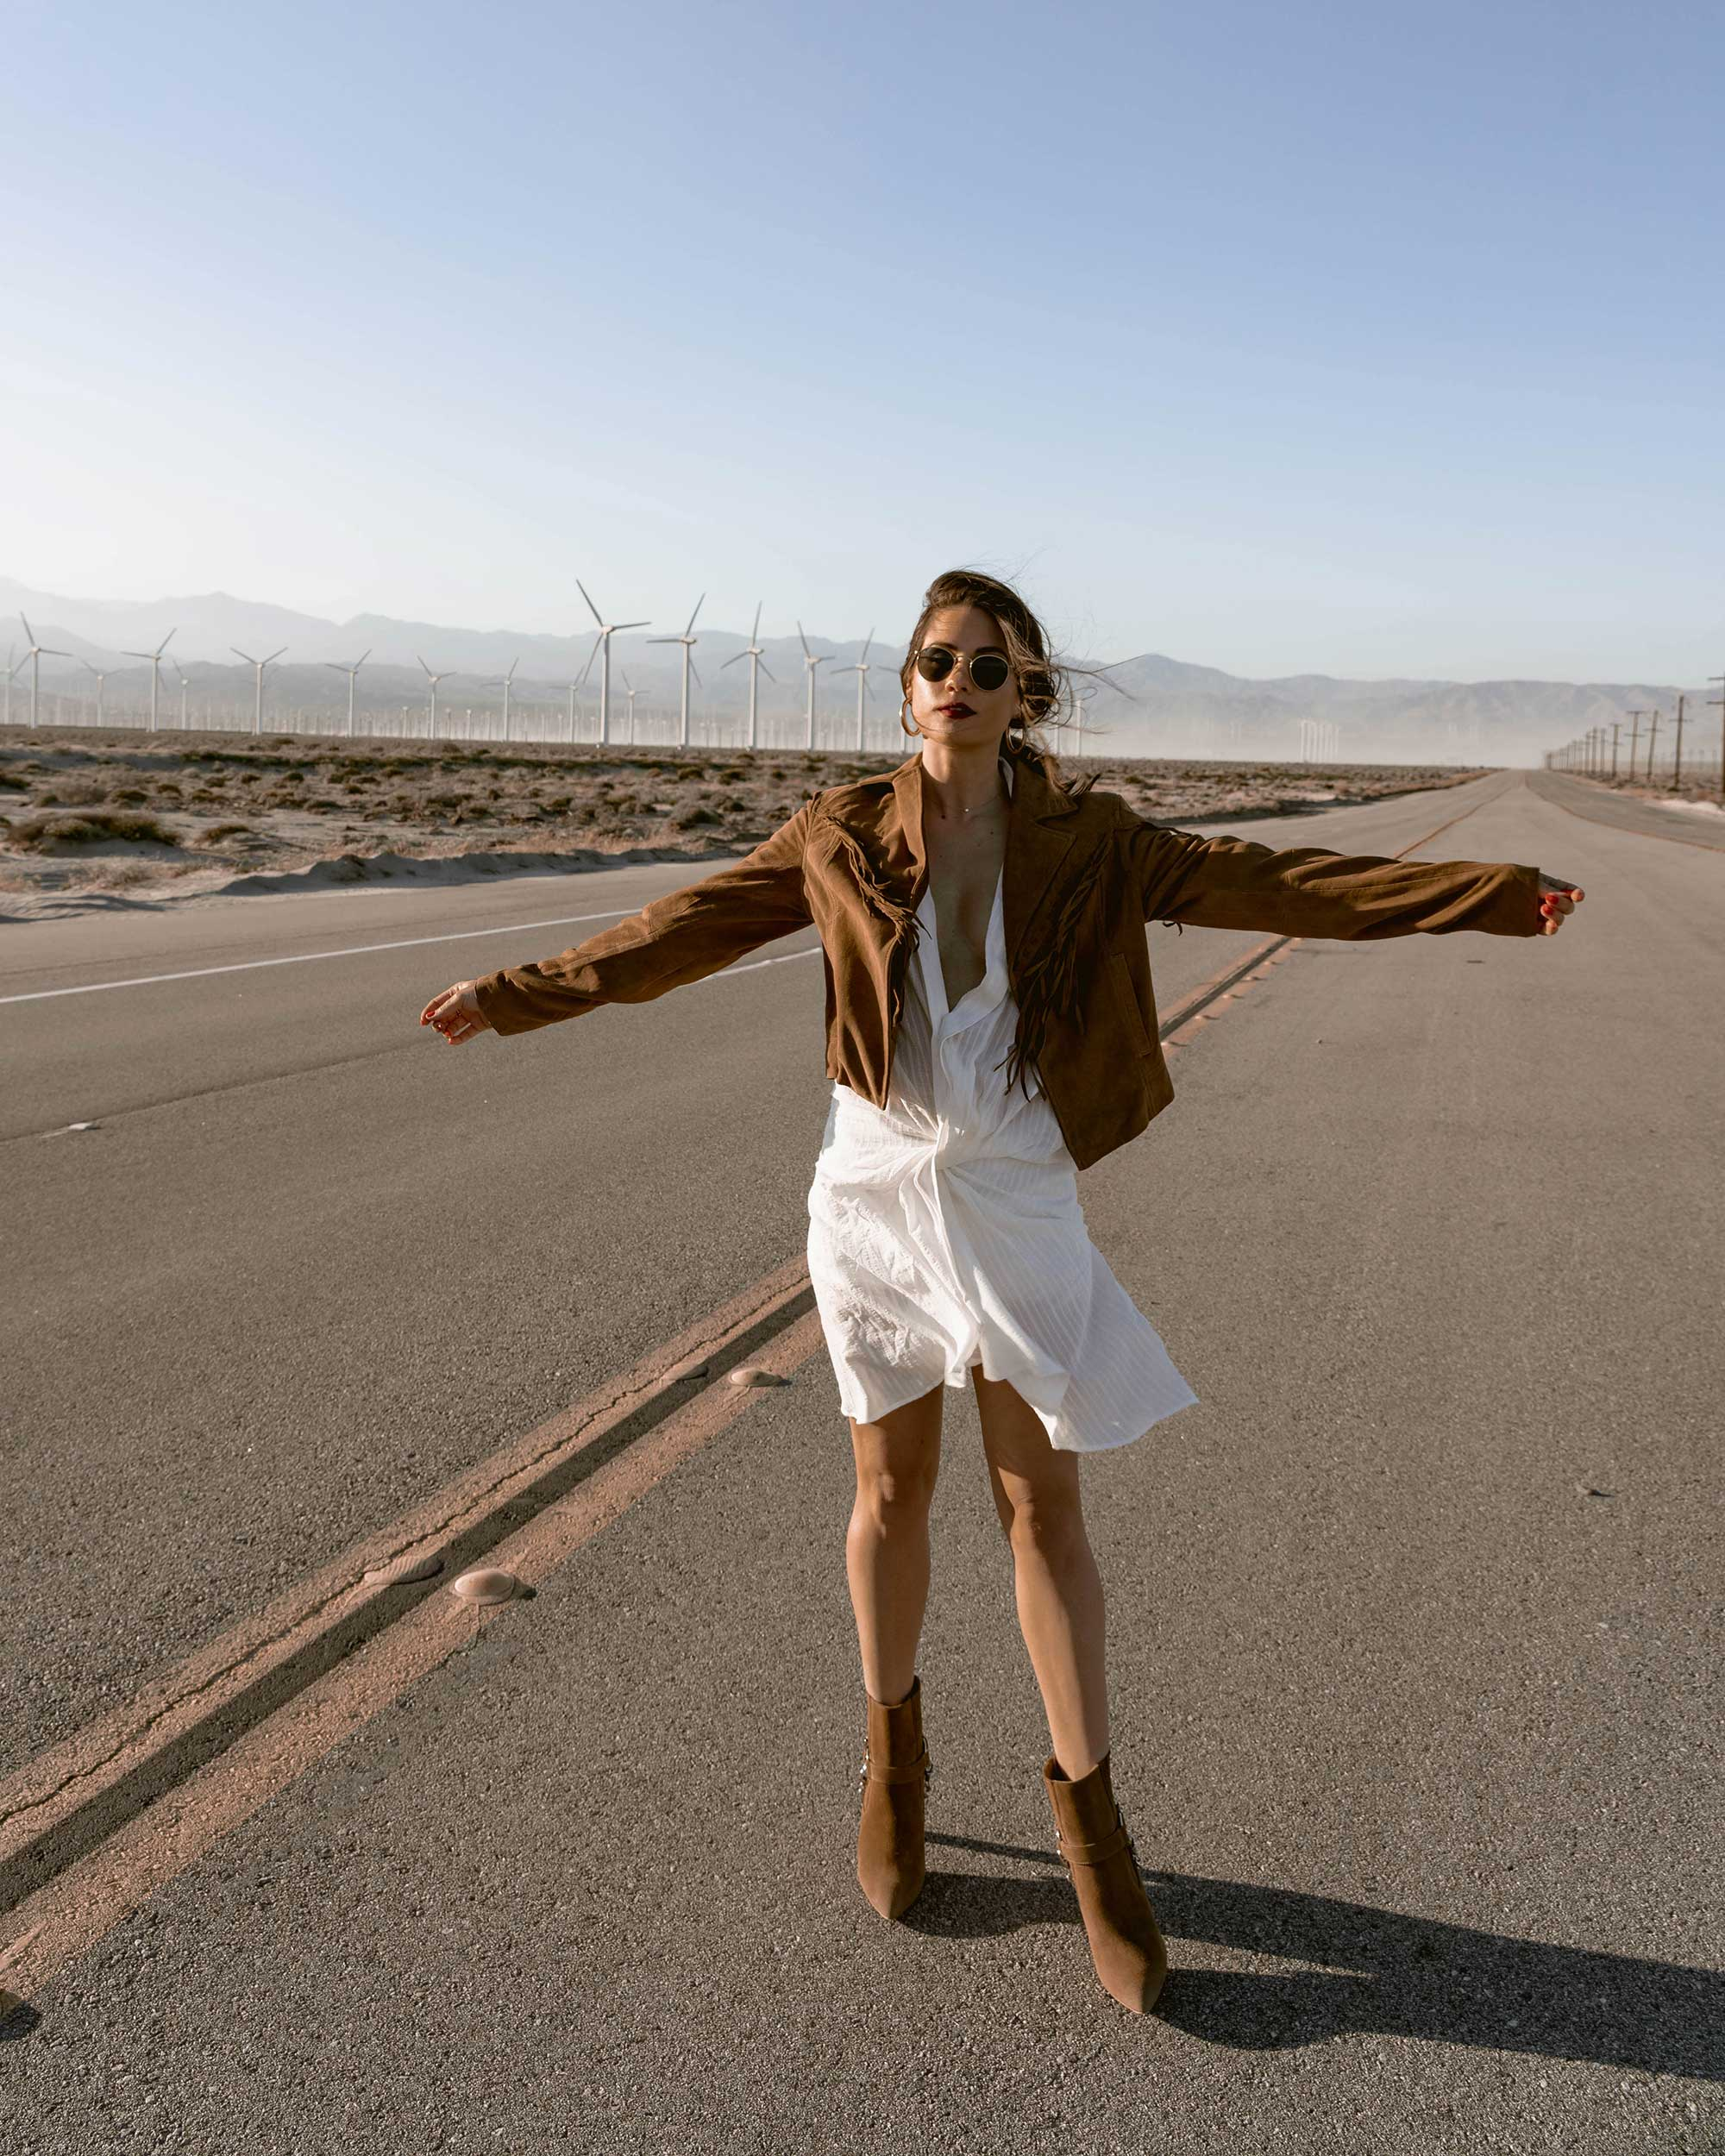 Sarah-Butler-of-Sarah-Styles-Seattle-wears-Jacquemus-Alassio-draped-white-cotton-mini-dress,-Paige-Darlene-Fringed-Suede-Jacket,-and-Paige-suede-western-boot-in-Palm-Springs-for-Coachella-Festival-Outfit-_-@sarahchristine9.jpg